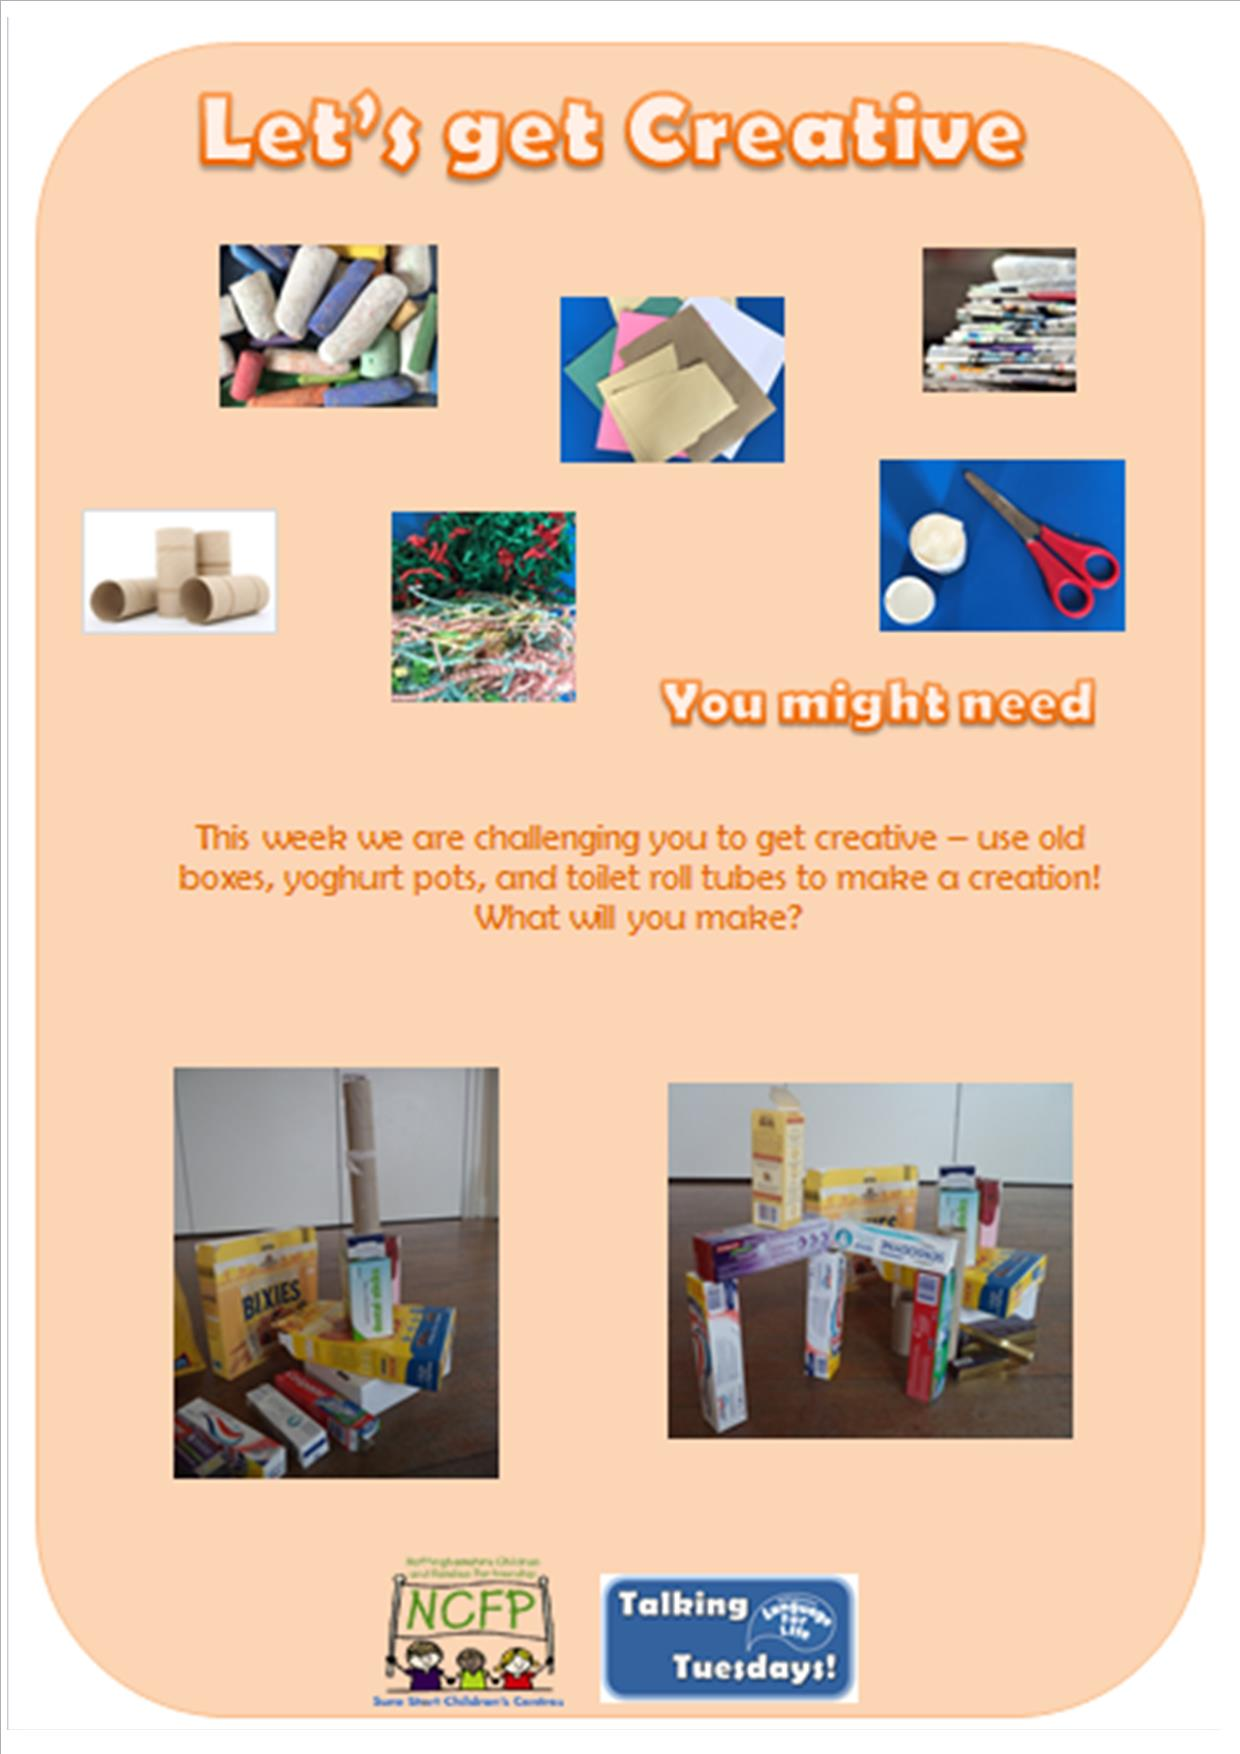 You might need: scissors, chalk, coloured paper, newspaper, shredded paper, cardboard boxes. This week we are challenging you to get creative - use old boxes, yoghurt pots, and toilet roll tubes to make a creation. What will you make?